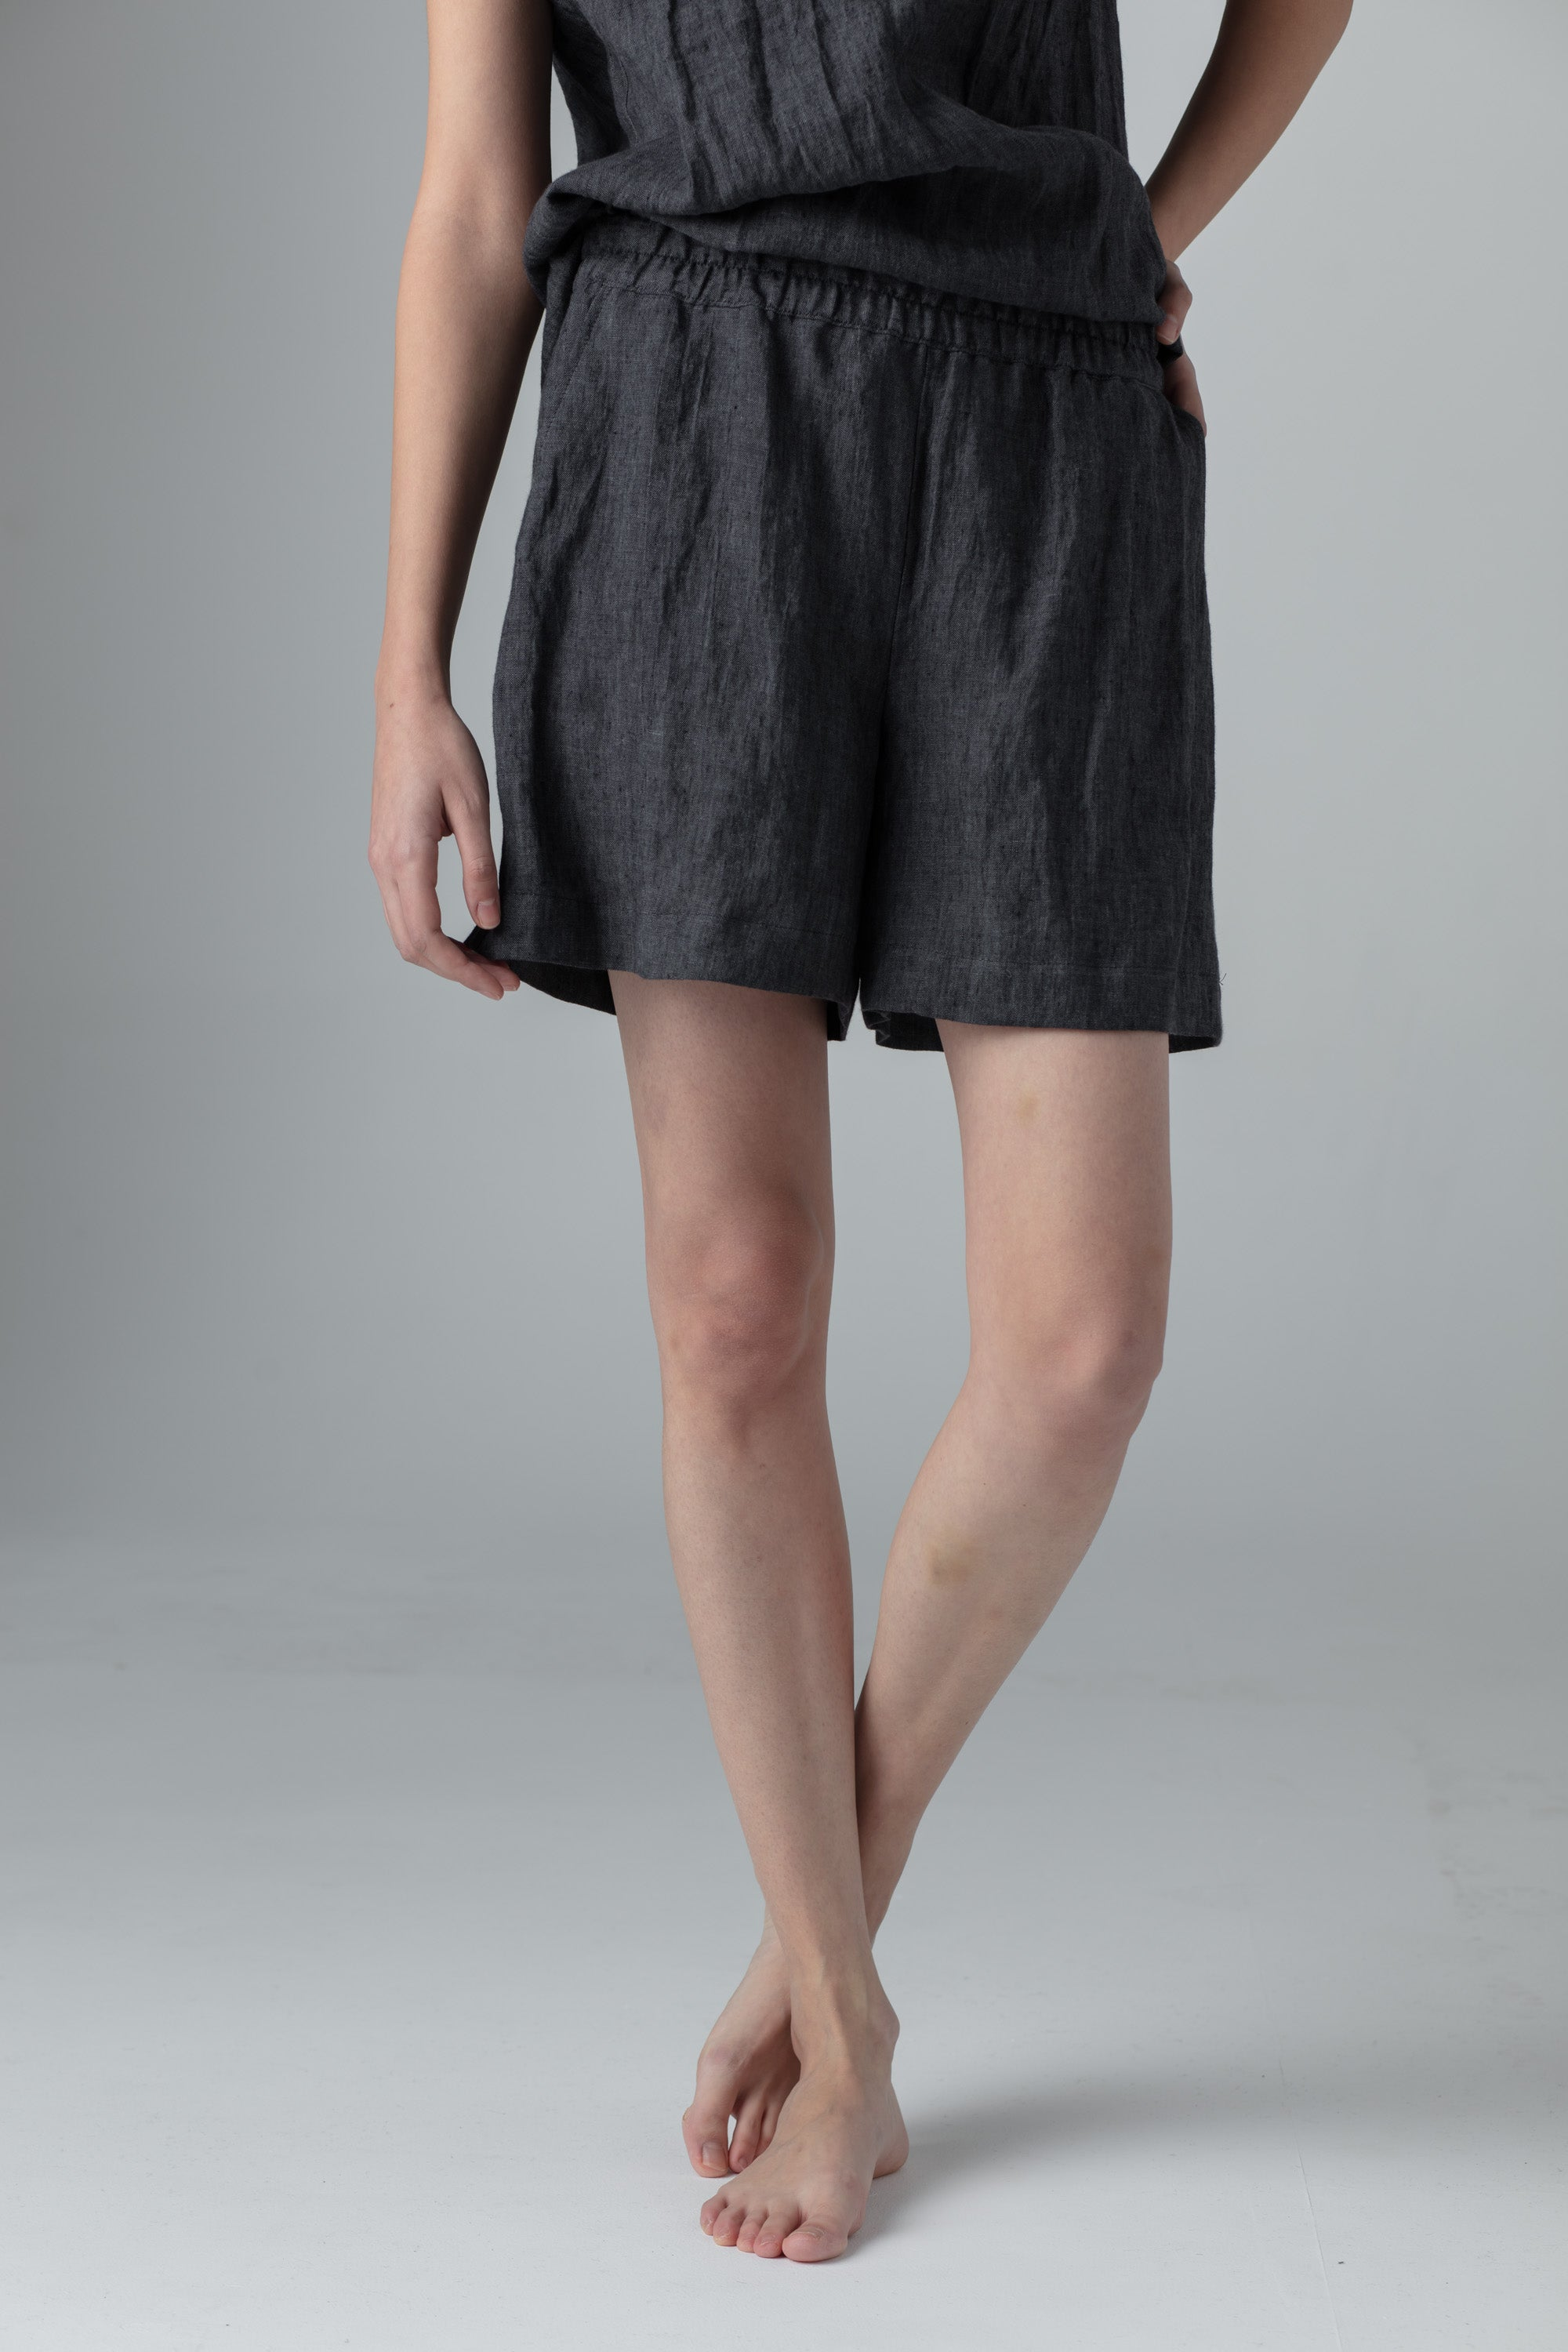 SHORTS dark grey